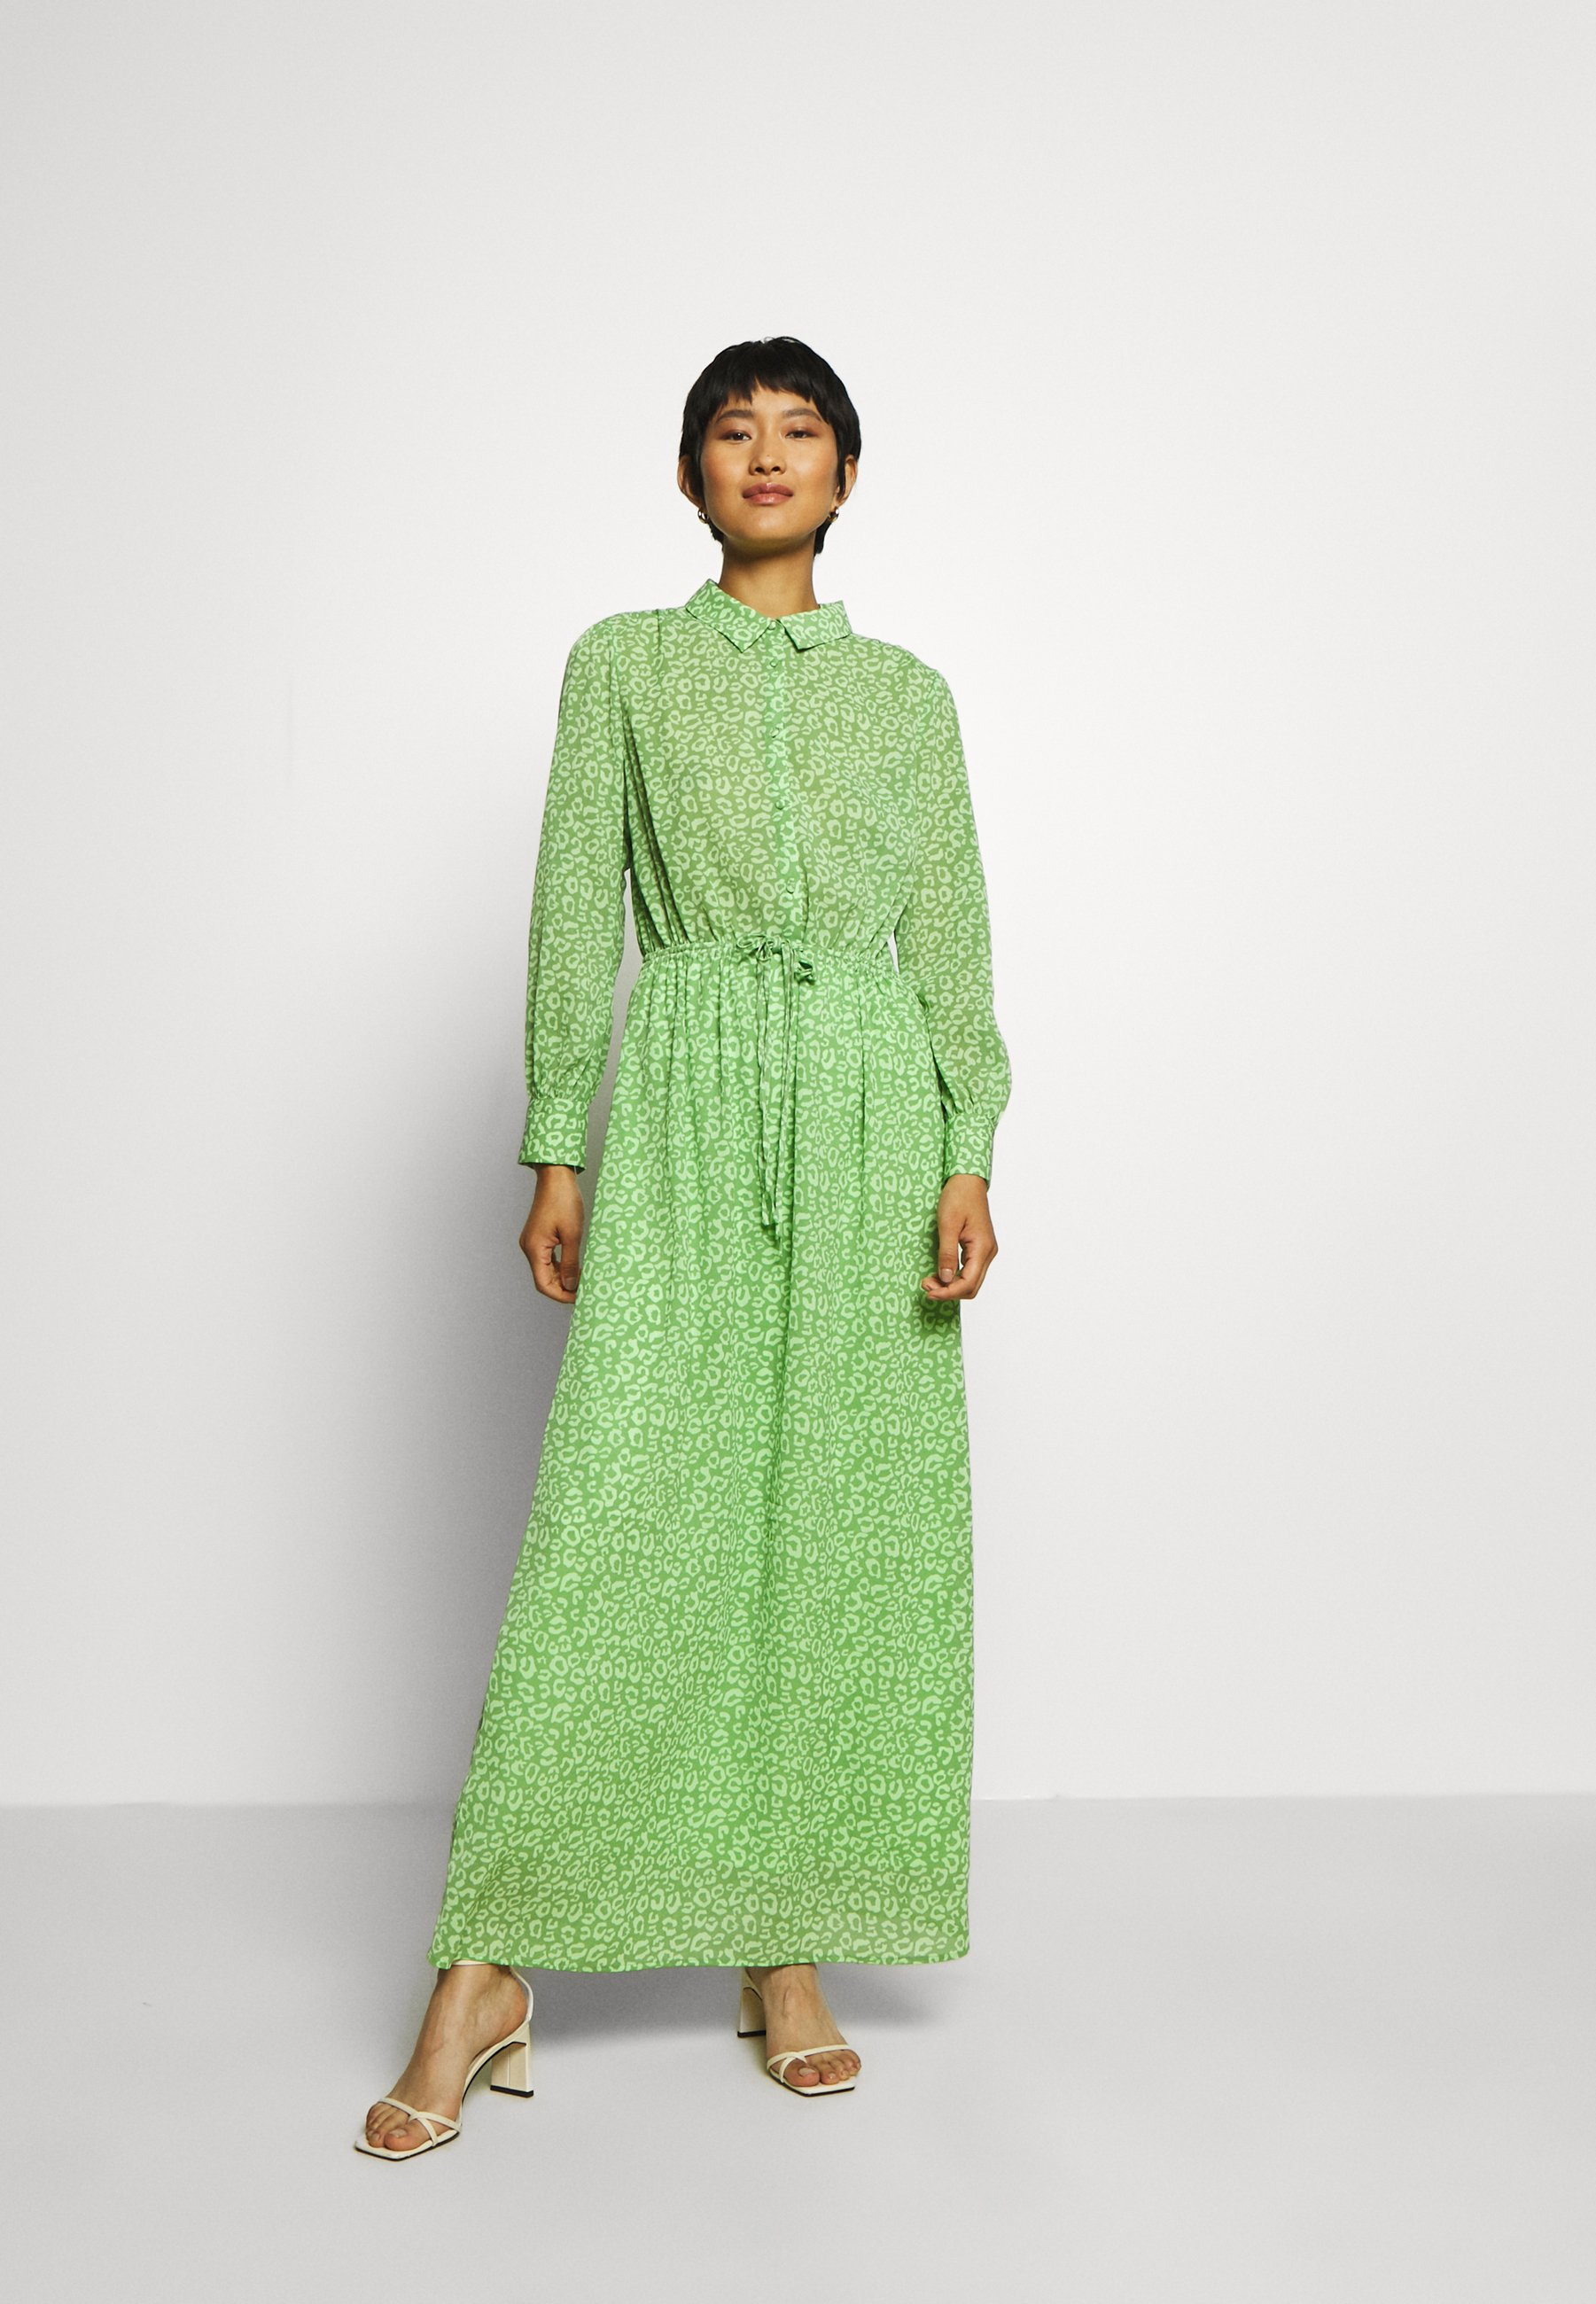 Latest Collections Cheap And Nice Women's Clothing Another-Label MALEY DRESS Maxi dress green eyes 5apRGbY4s tMGPLmkim